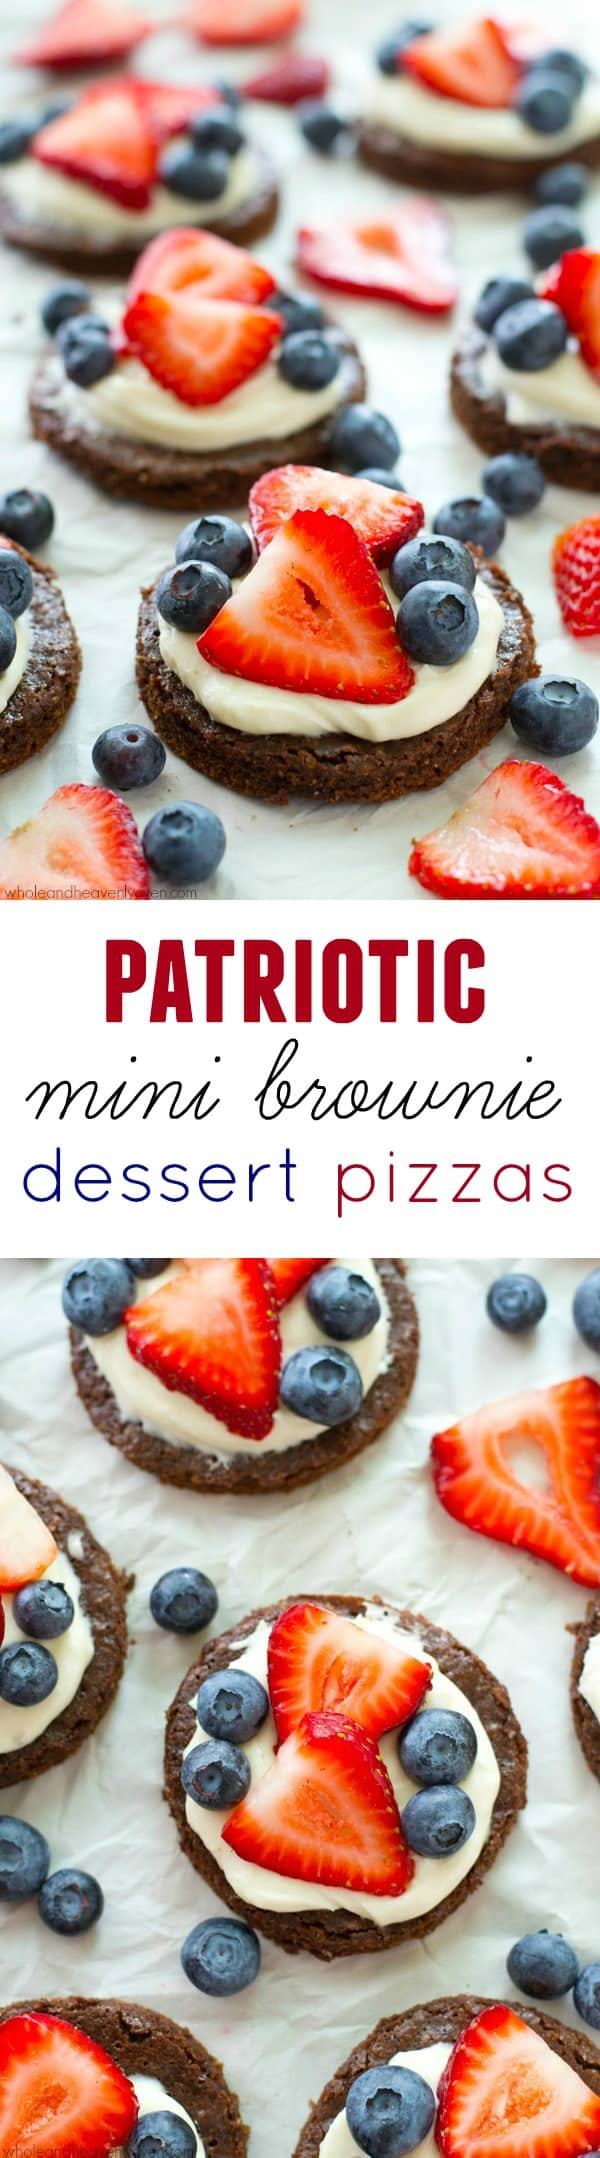 These mini berry-loaded dessert pizzas are going to be a hit at the 4th of July this year! No one will be able to resist the fudgy brownies, luscious cream cheese frosting, and overload of fresh berries. @WholeHeavenly